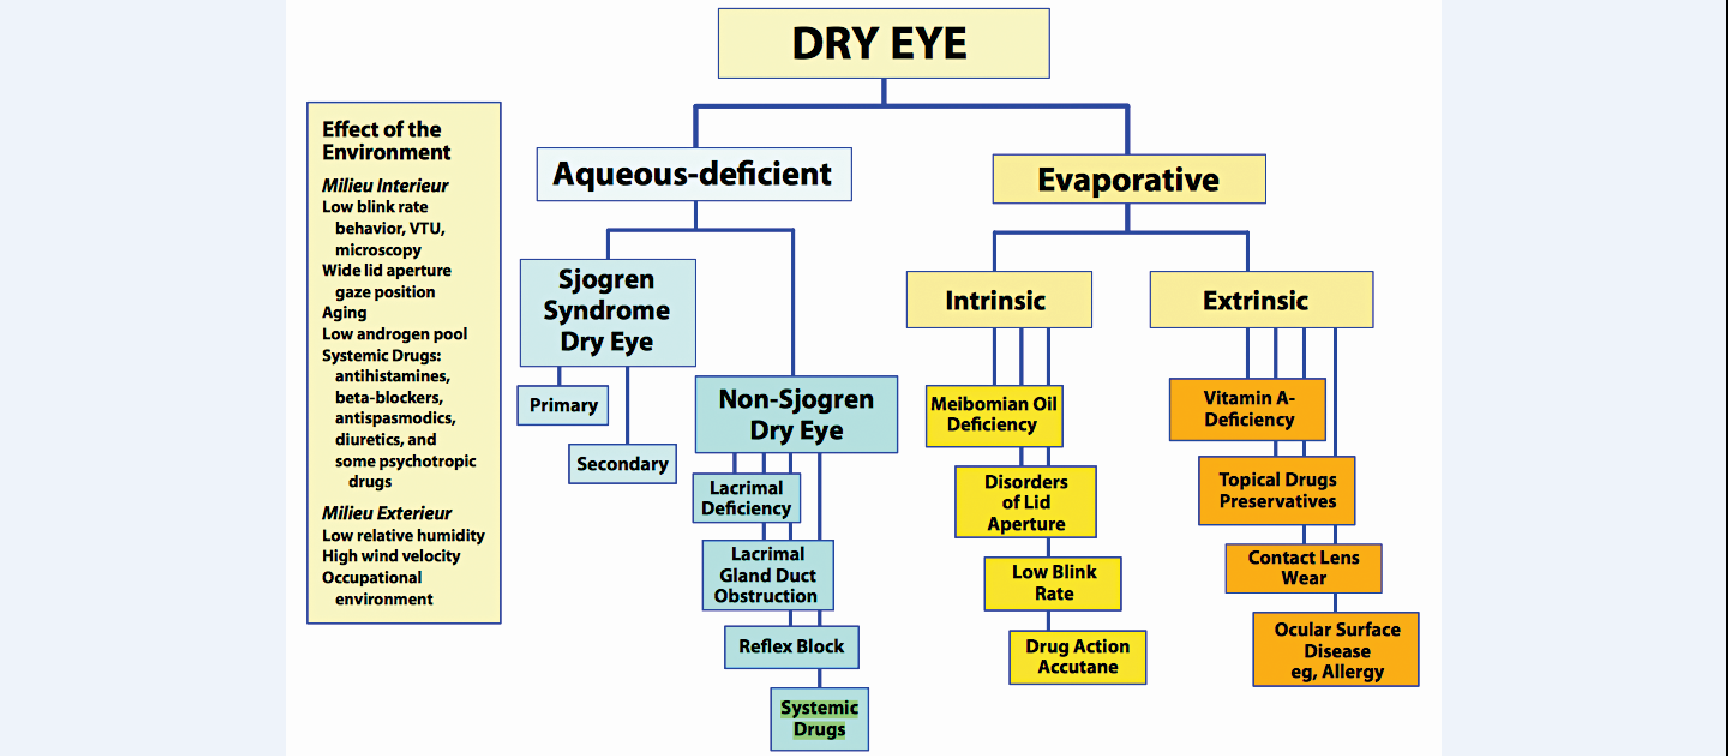 Dry eye disease has numerous causes, and treatment requires